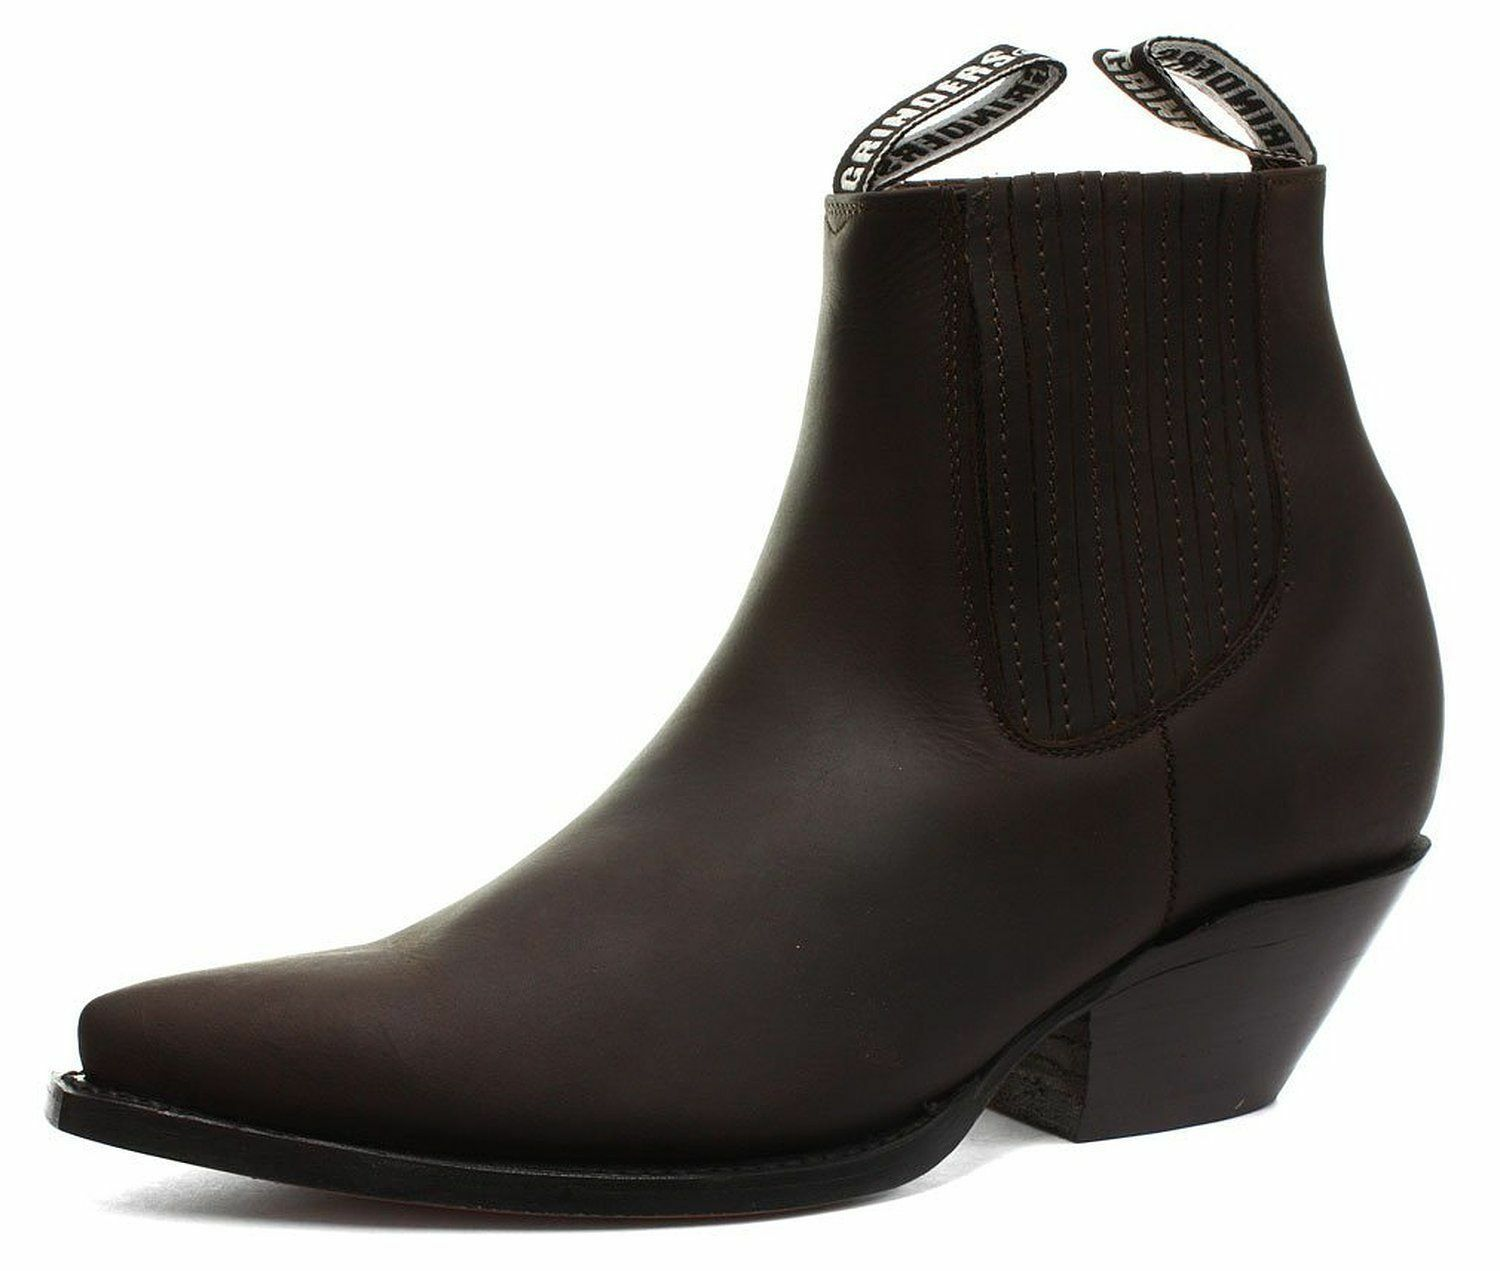 GRINDERS Mustang Brown Unisex Leather Cowboy Slip On Cuban Heel Classic Boots